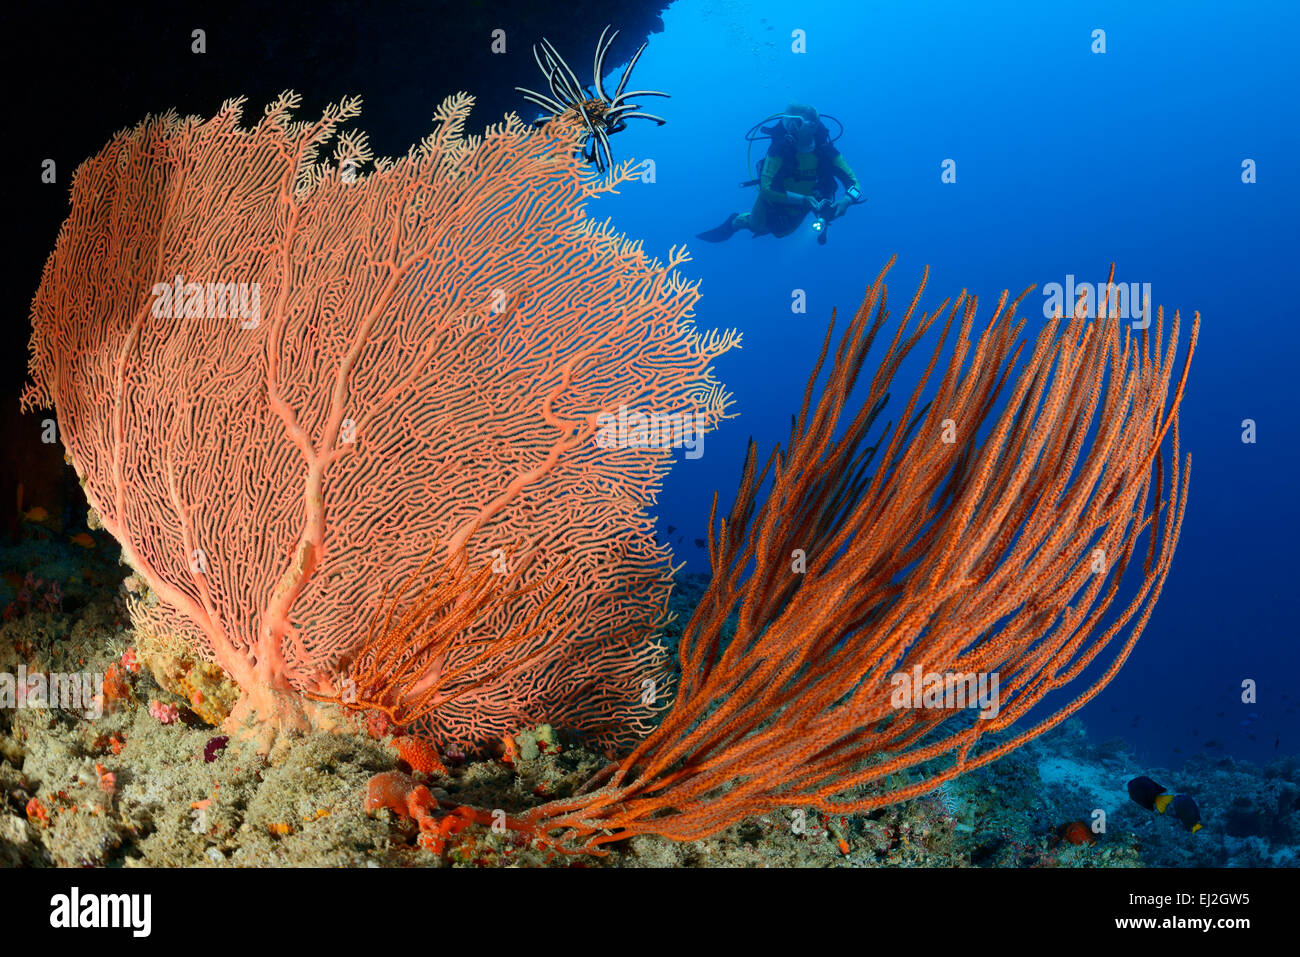 Subergorgia sp. Ellisella sp., Giant seafan and Sea whip Coral and scuba diver, Dhonfan Thil, Baa Atoll, Maldives Stock Photo